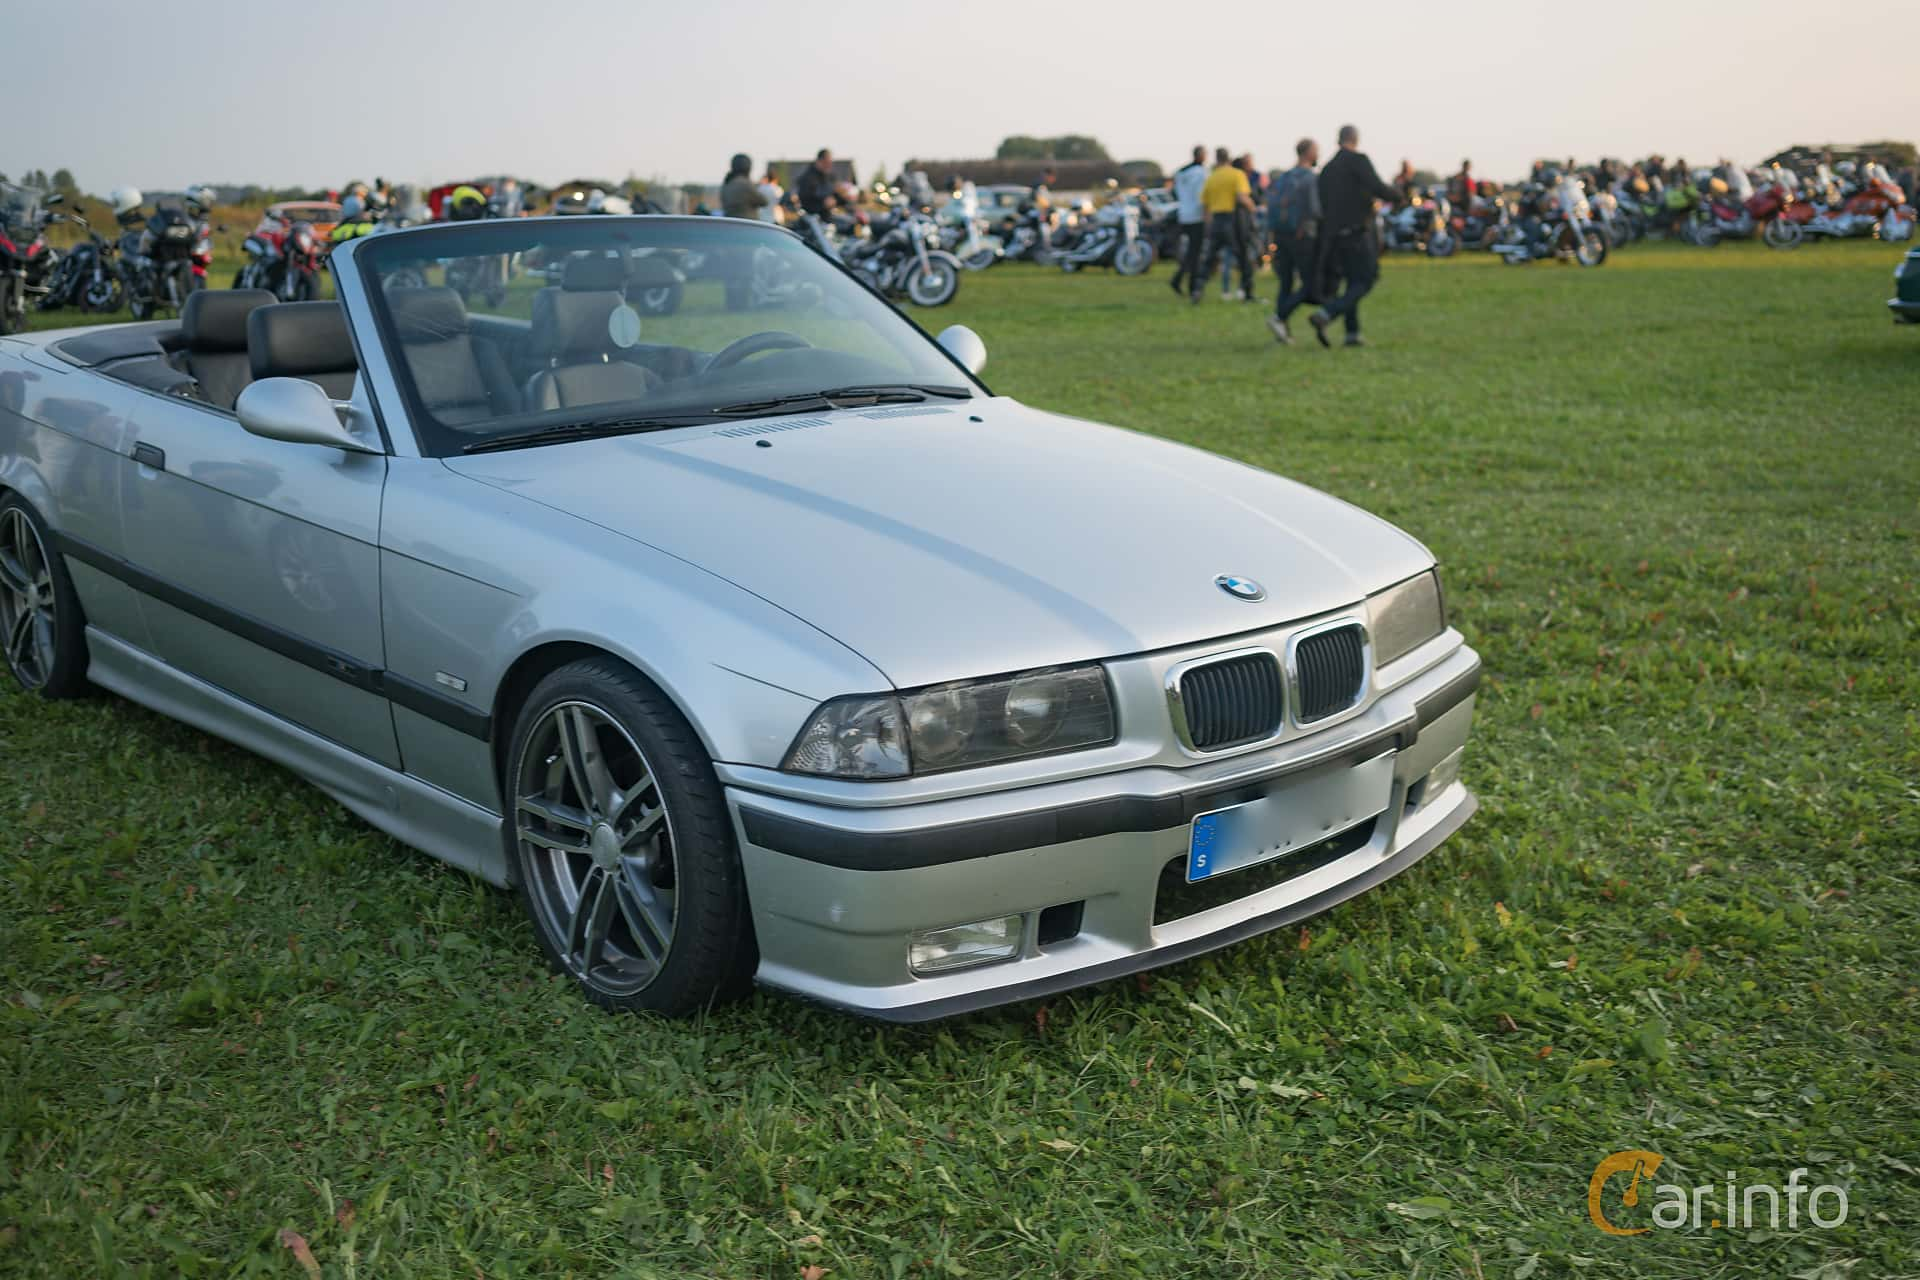 2 images of bmw 320i convertible 2 0 manual 150hp 1997 by rh car info 1998 BMW M3 Convertible 1998 BMW M3 Convertible